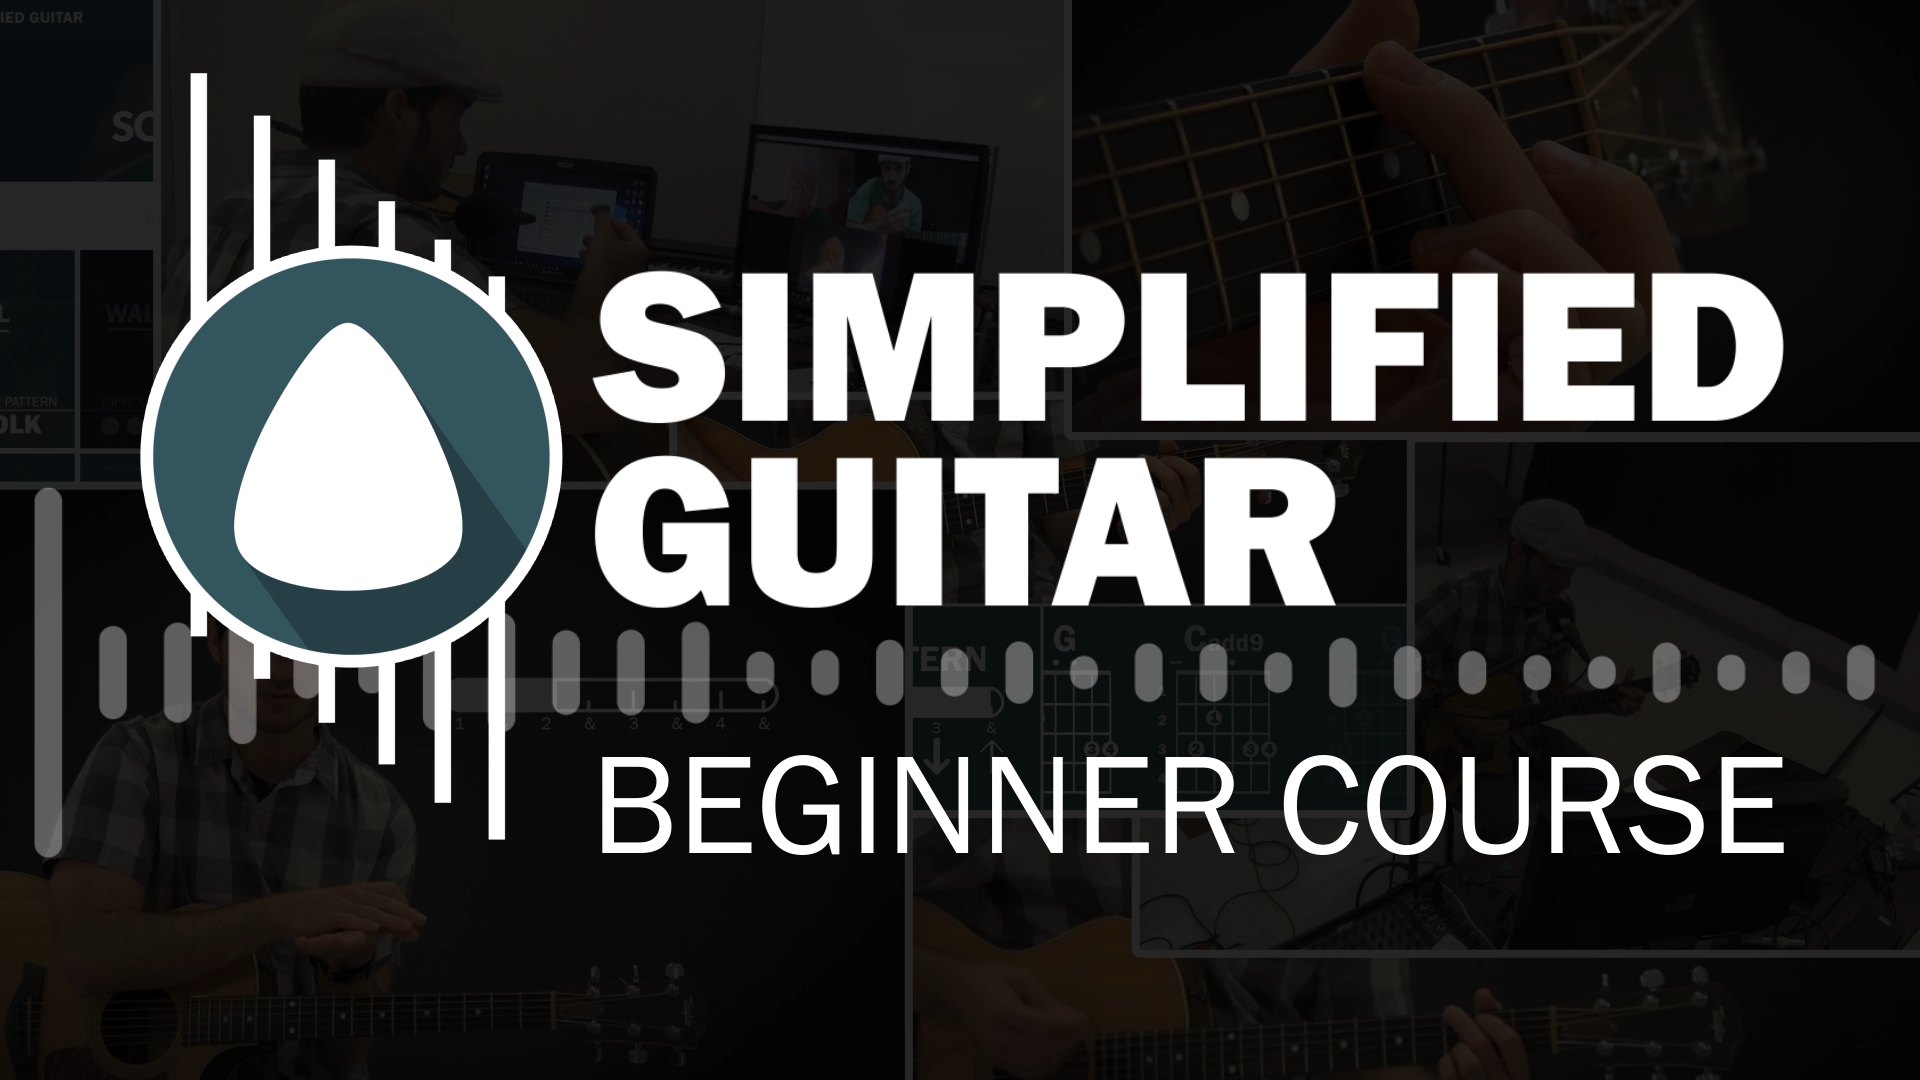 Country Roads Simplified Guitar